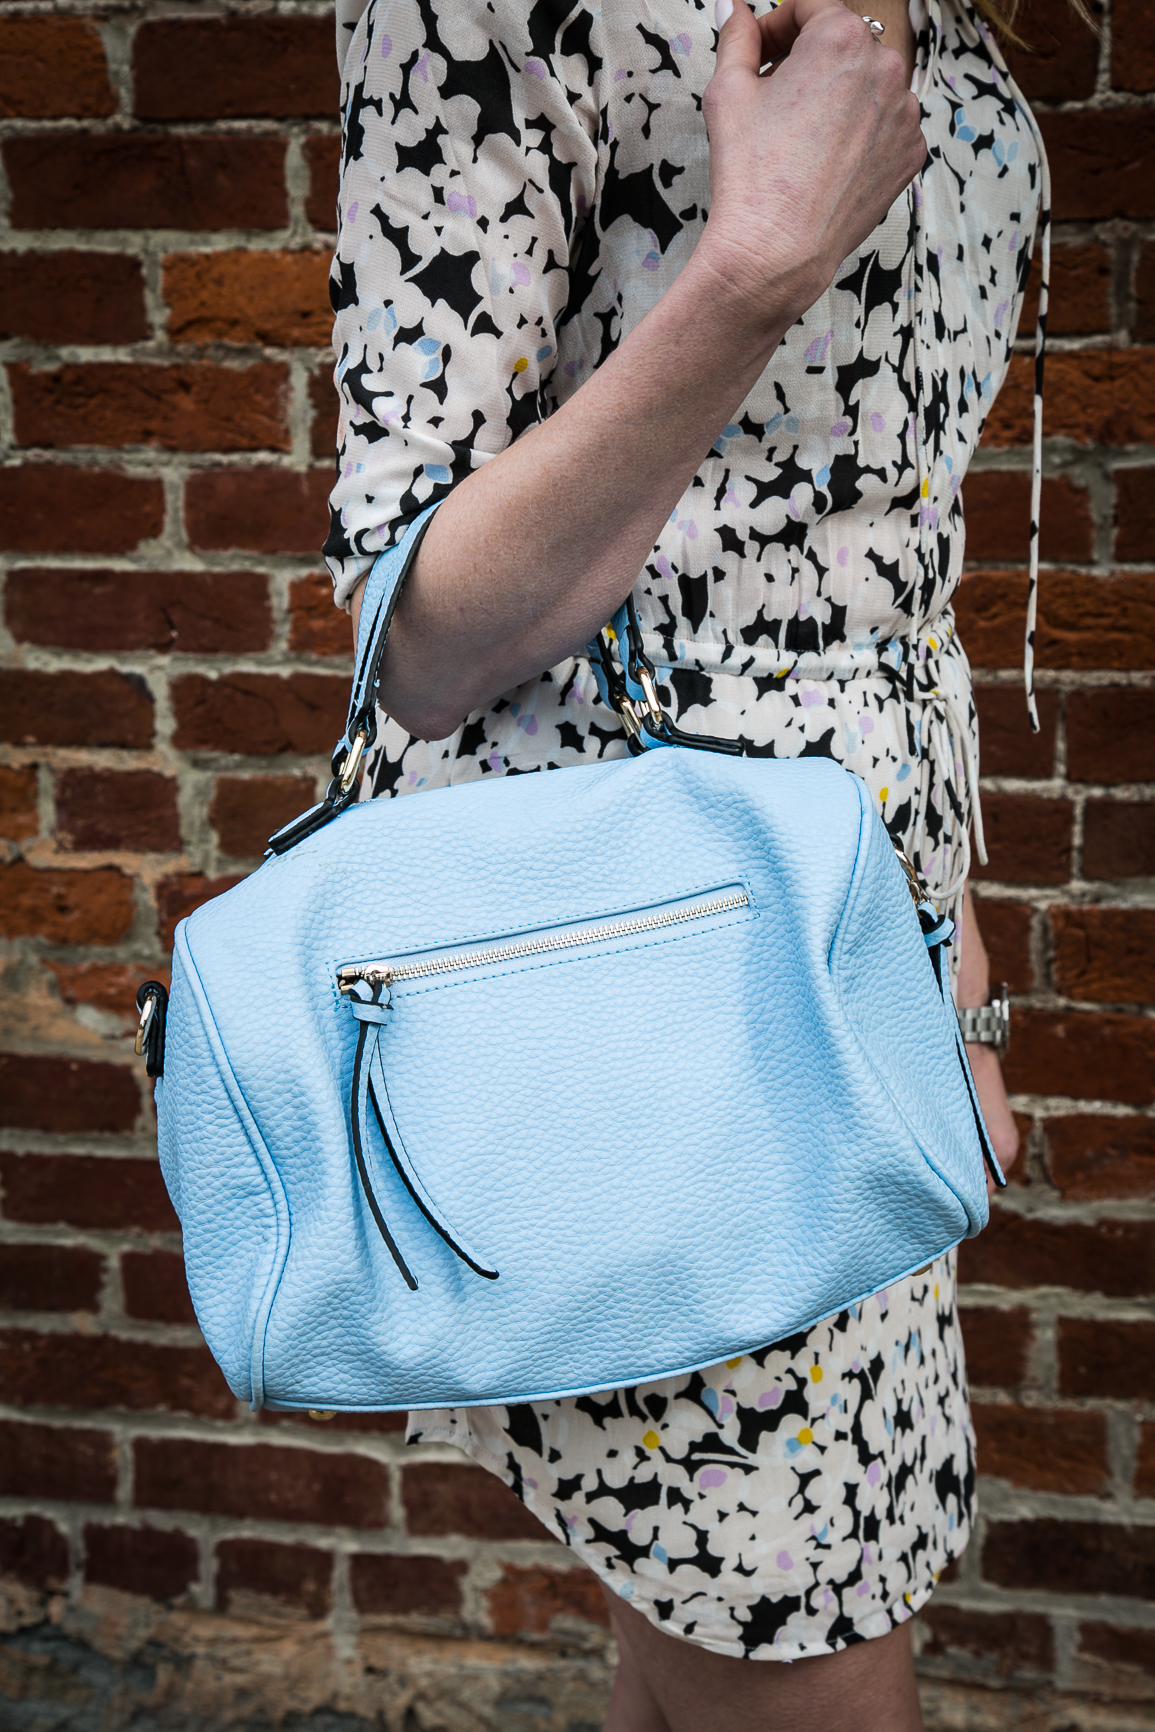 Stitch Fix Handbag by www.mylifefromhome.com Wish-0578-MLFH3.11